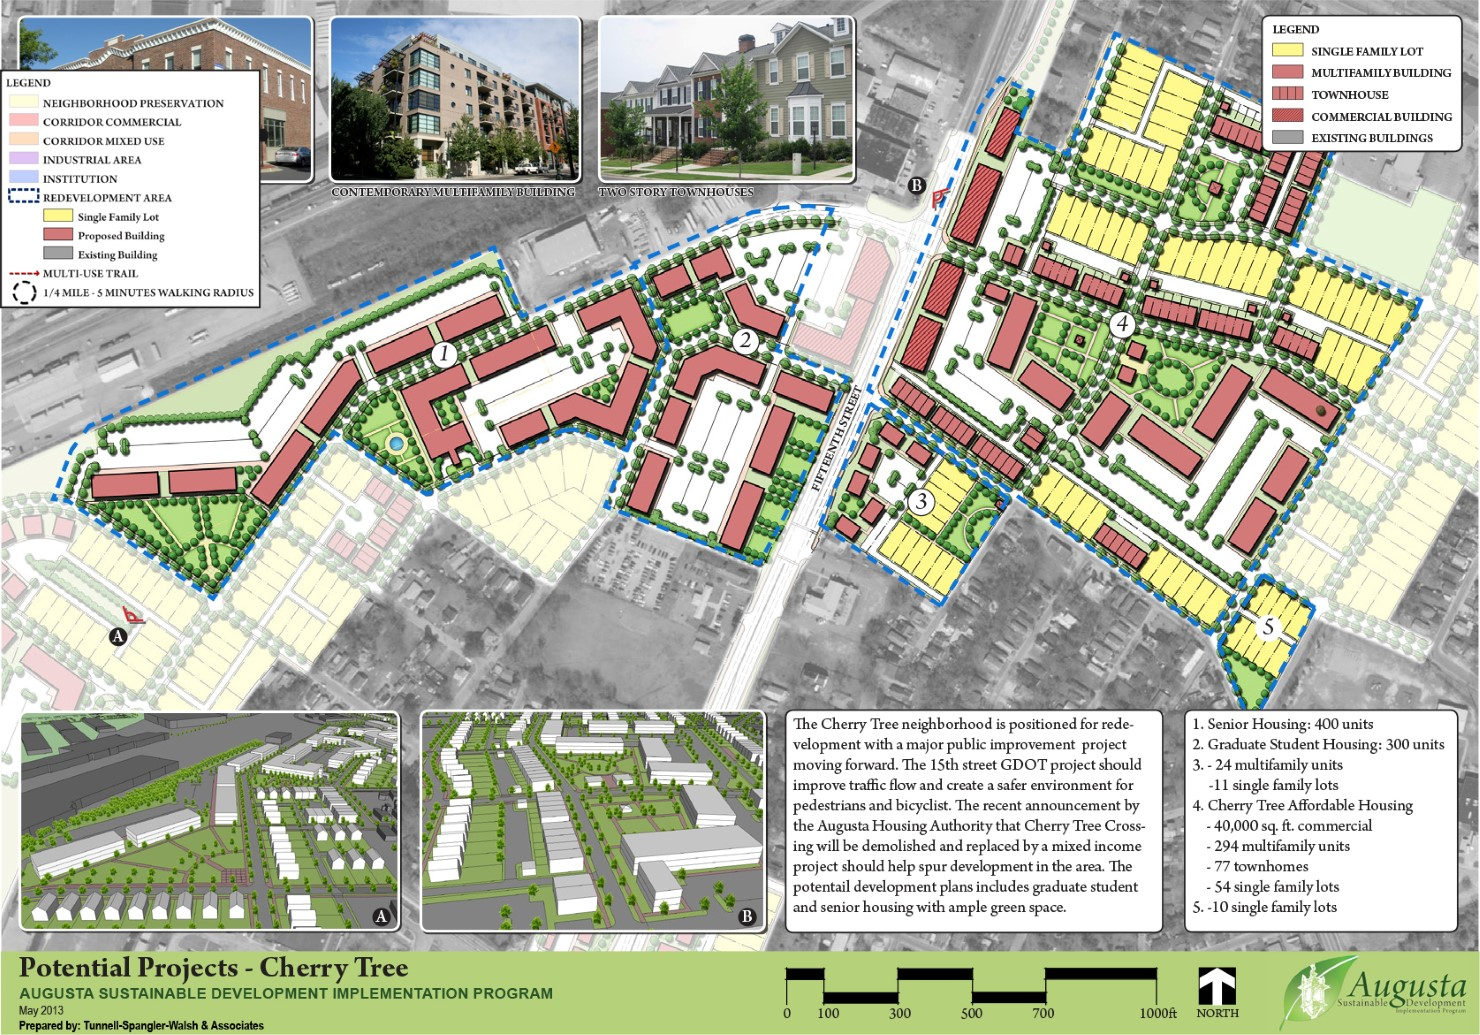 Augusta Sustainable Development Implementation Program: Cherry Tree Crossing Redevelopment